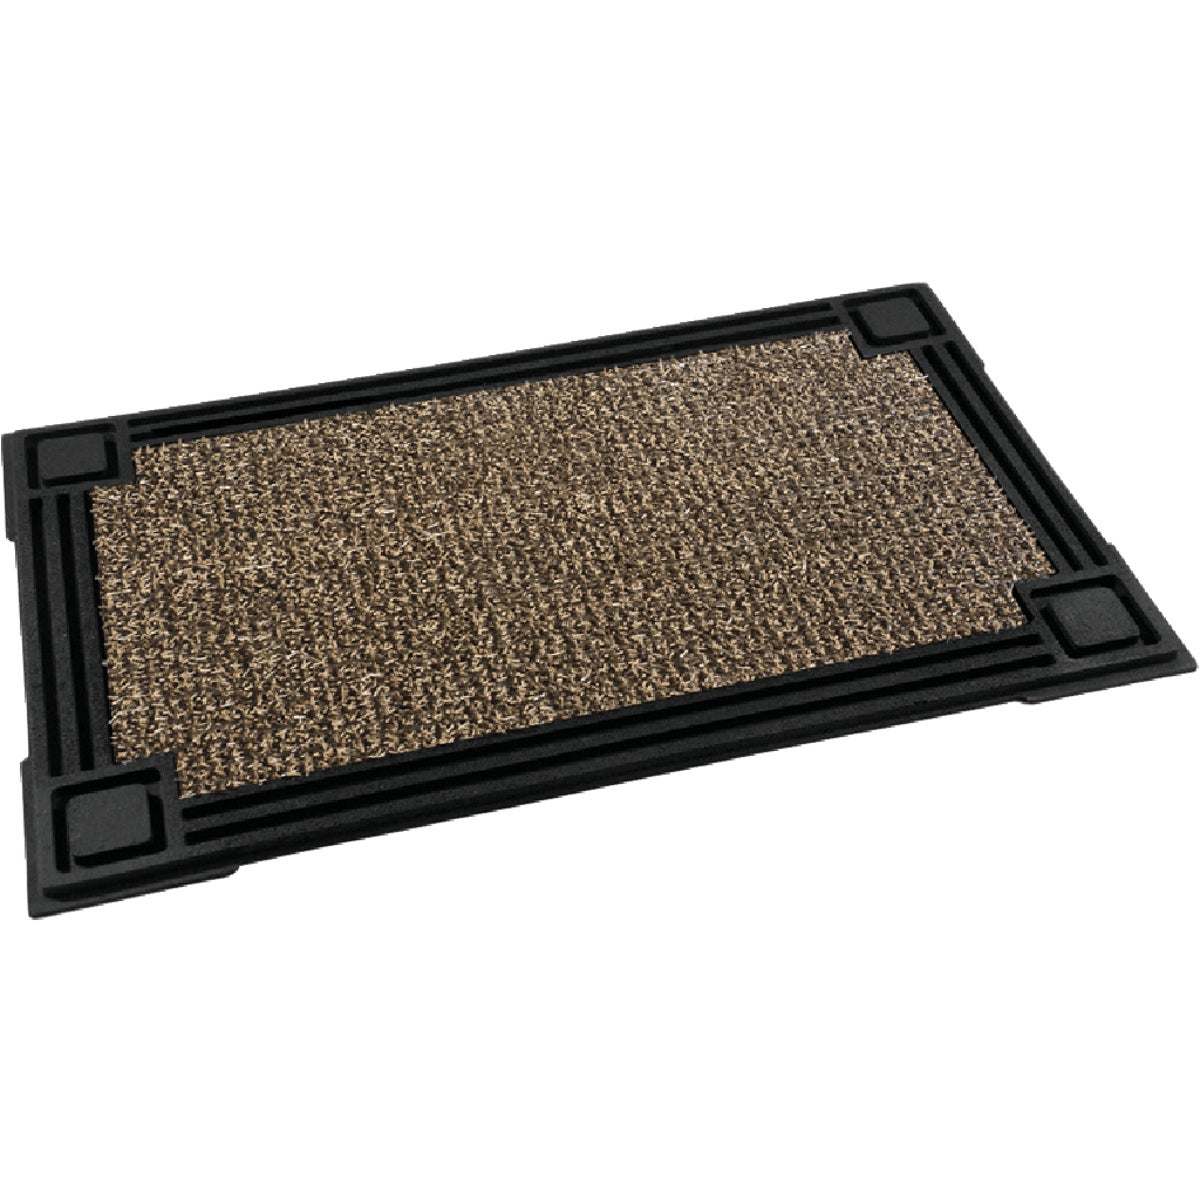 18X30 TAUPE CAPITOL MAT - 10302039 by Grassworx